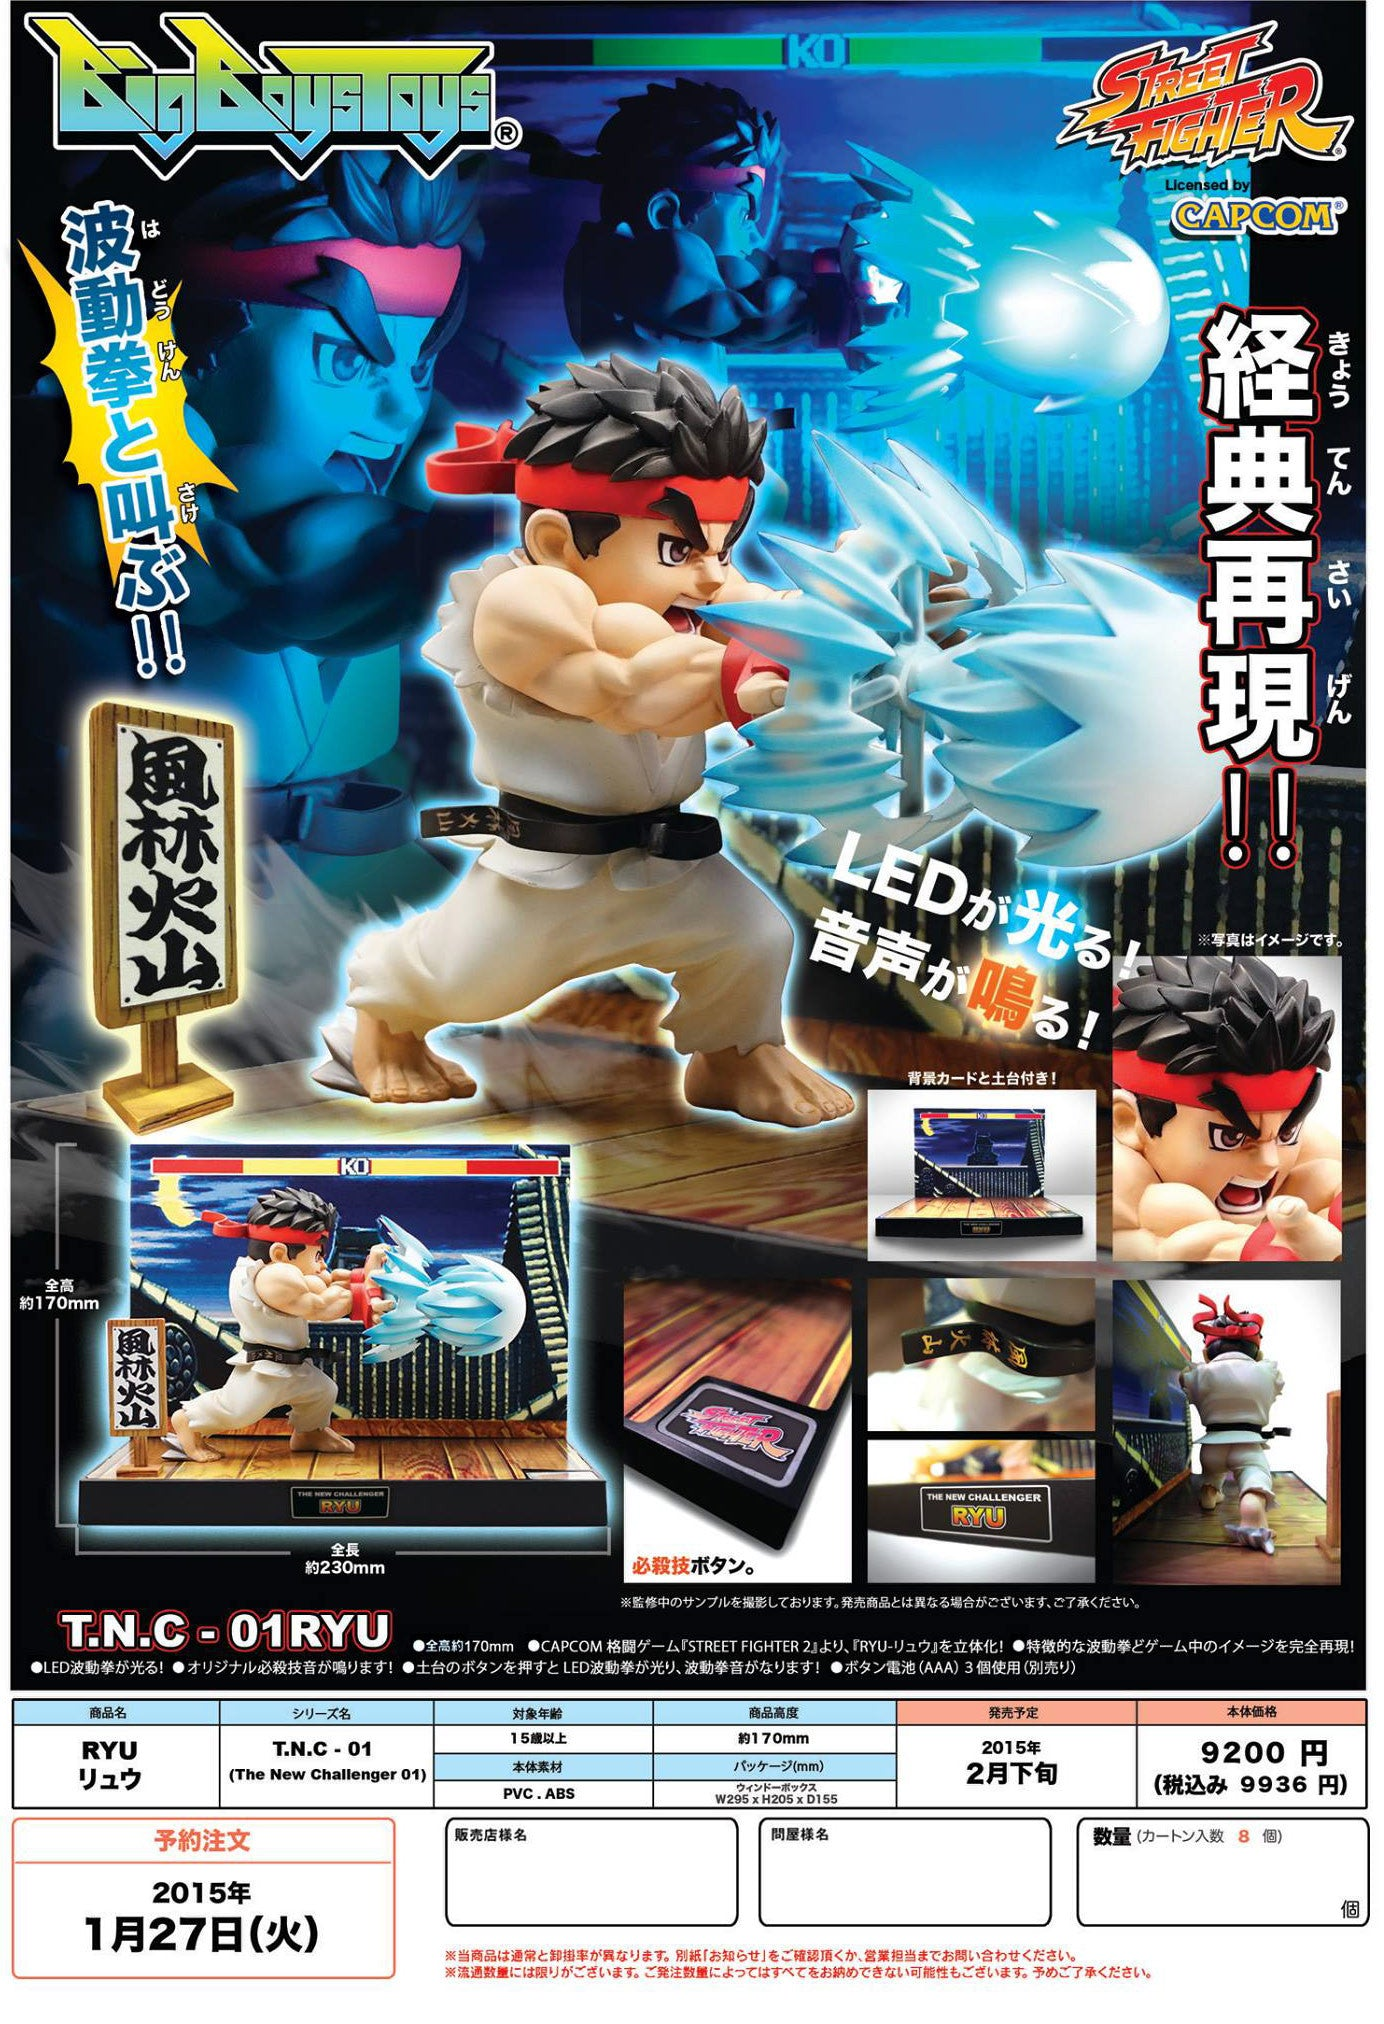 Street Fighter The New Challenger Figure 01 - Ryu Retropixl Retrogaming retro gaming Rare Console Collector Limited Edition Japan Import